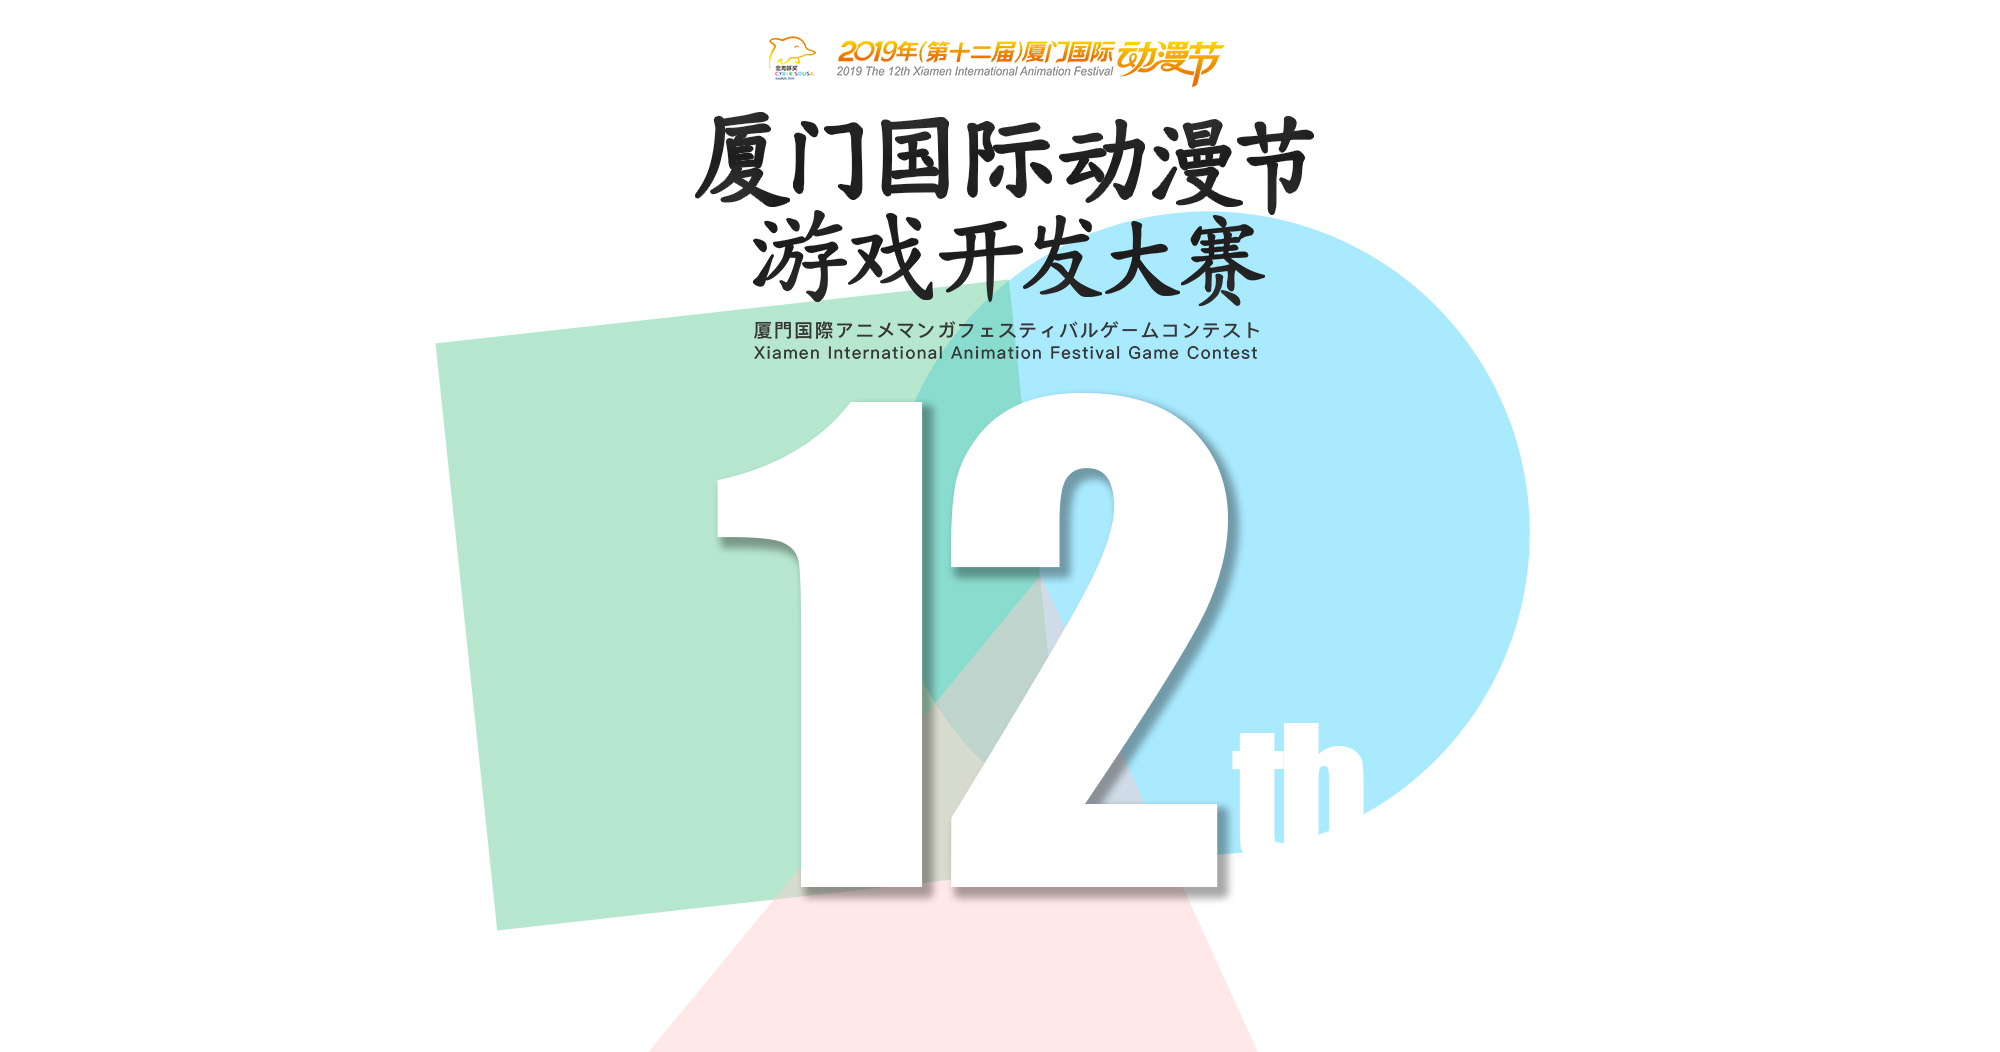 2019 (12th) Xiamen International Animation Festival's Game Contest